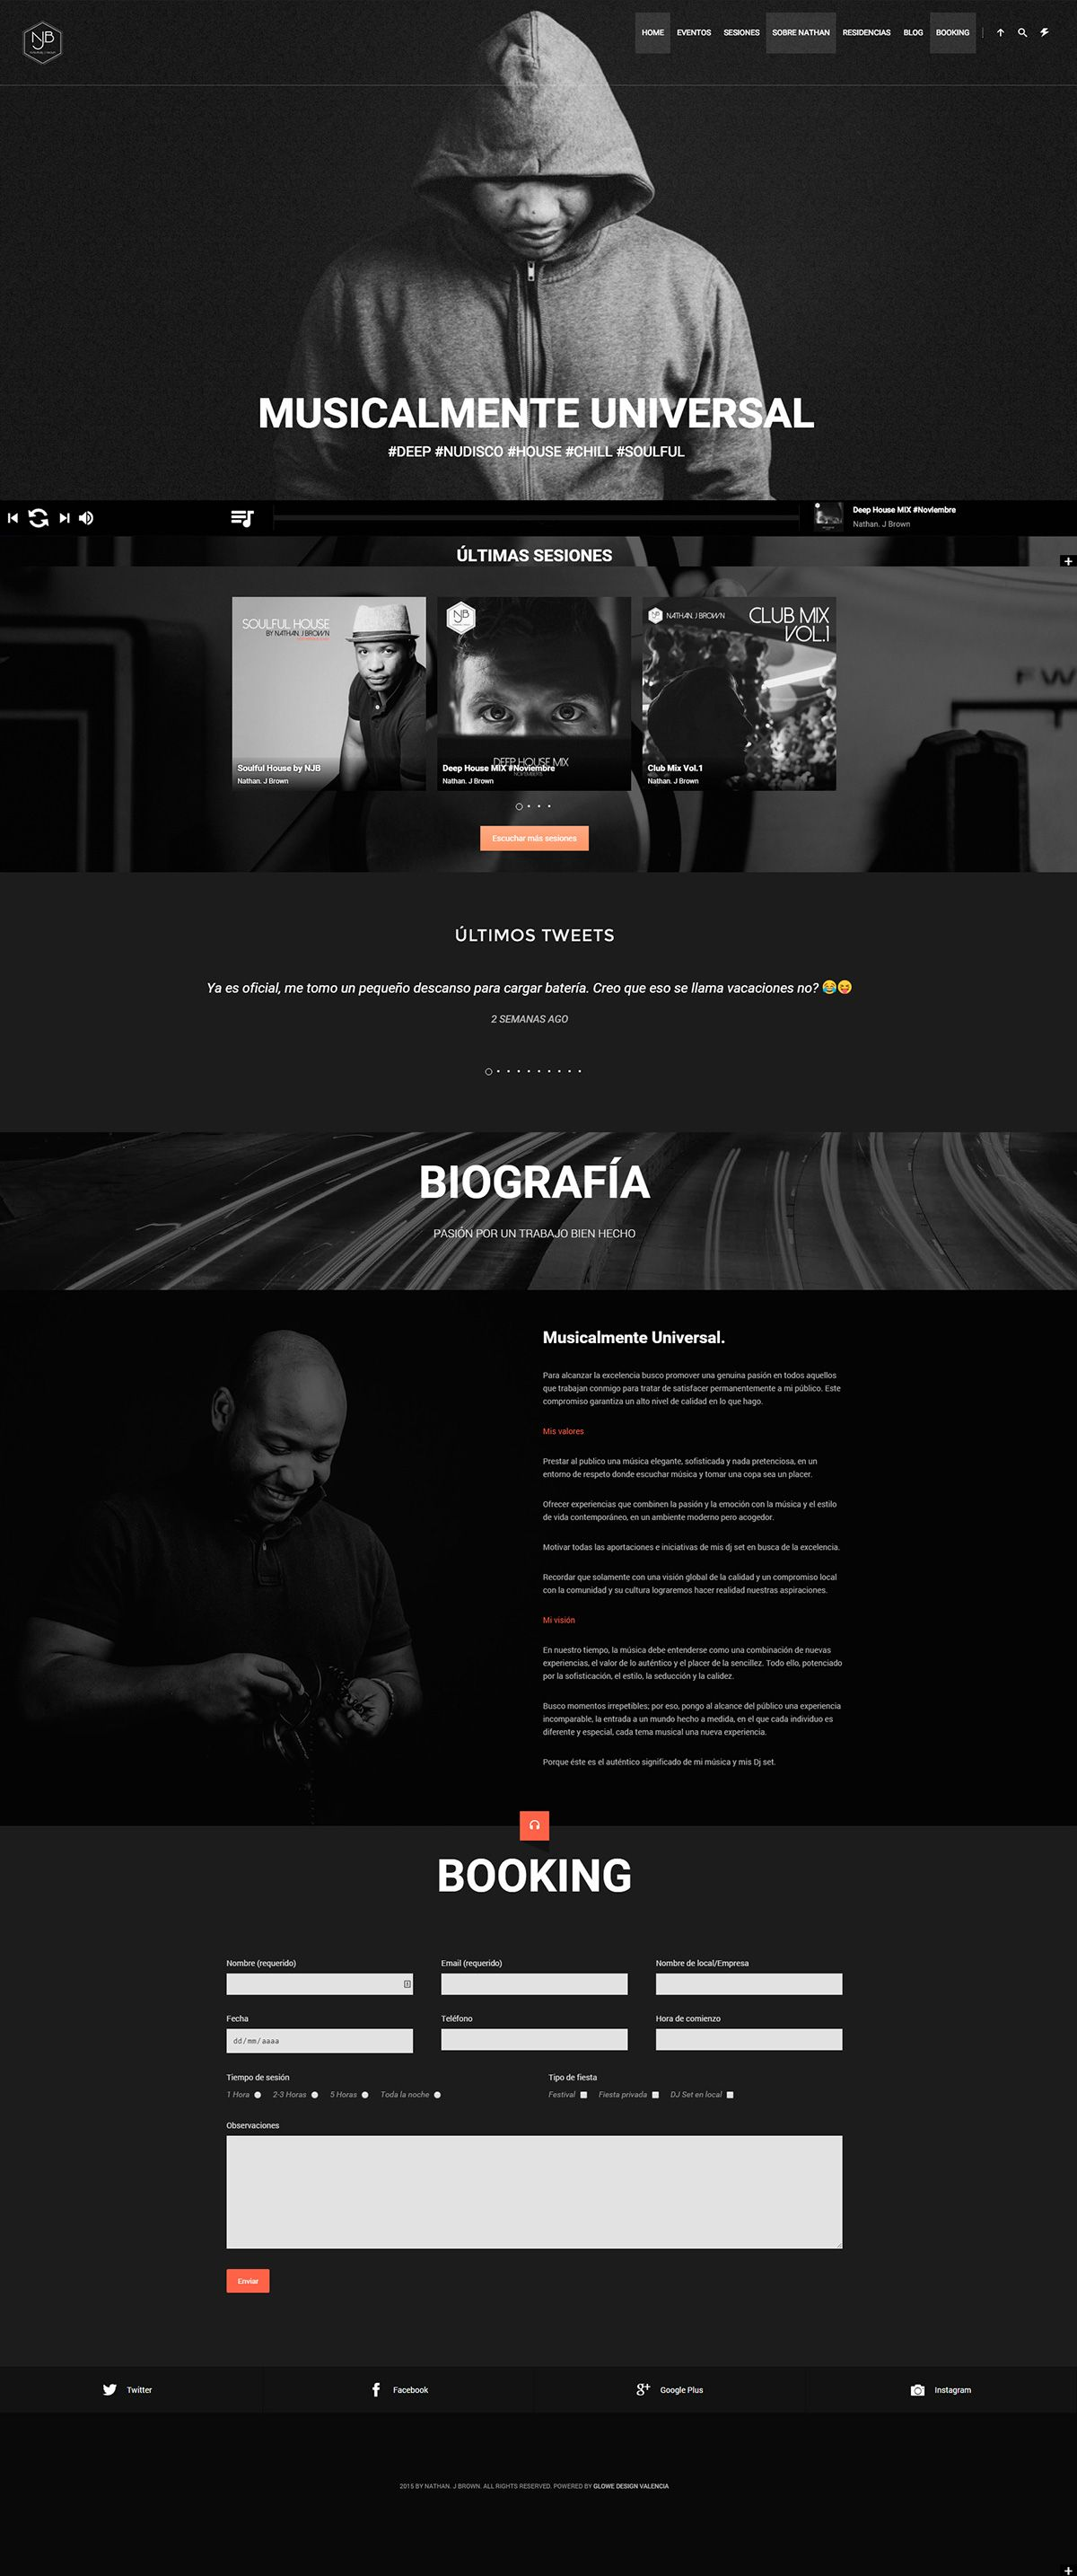 Web Design // Personal Branding Project // Espacio web diseñado por glowe para Nathan J Brown · www.glowemarketing.com · Glowe Copyright © All Rights Reserved